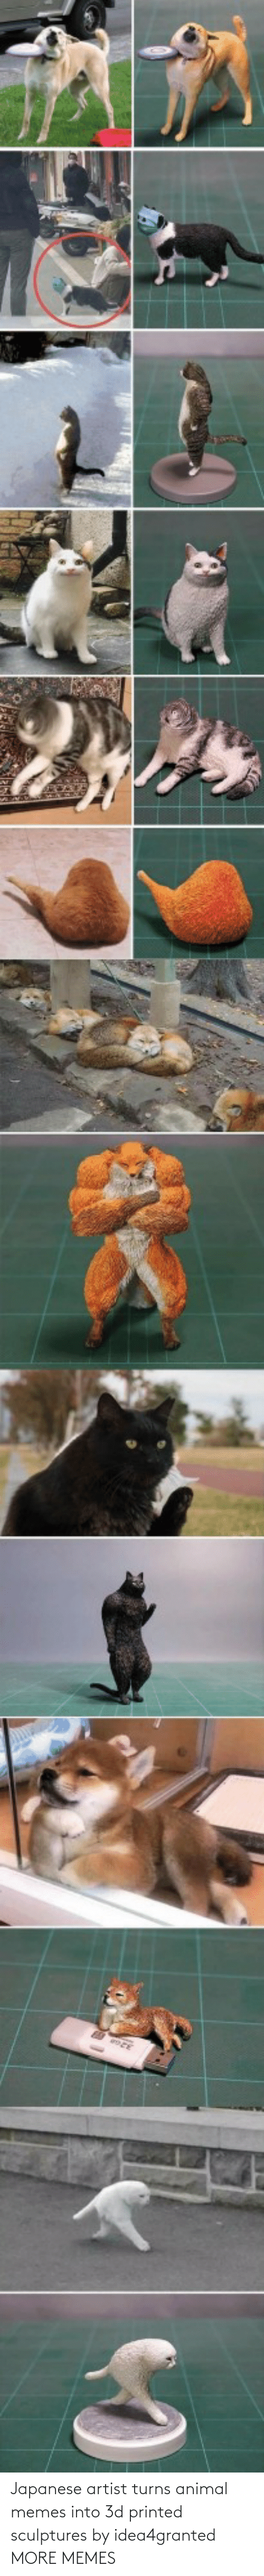 Dank, Memes, and Target: Japanese artist turns animal memes into 3d printed sculptures by idea4granted MORE MEMES